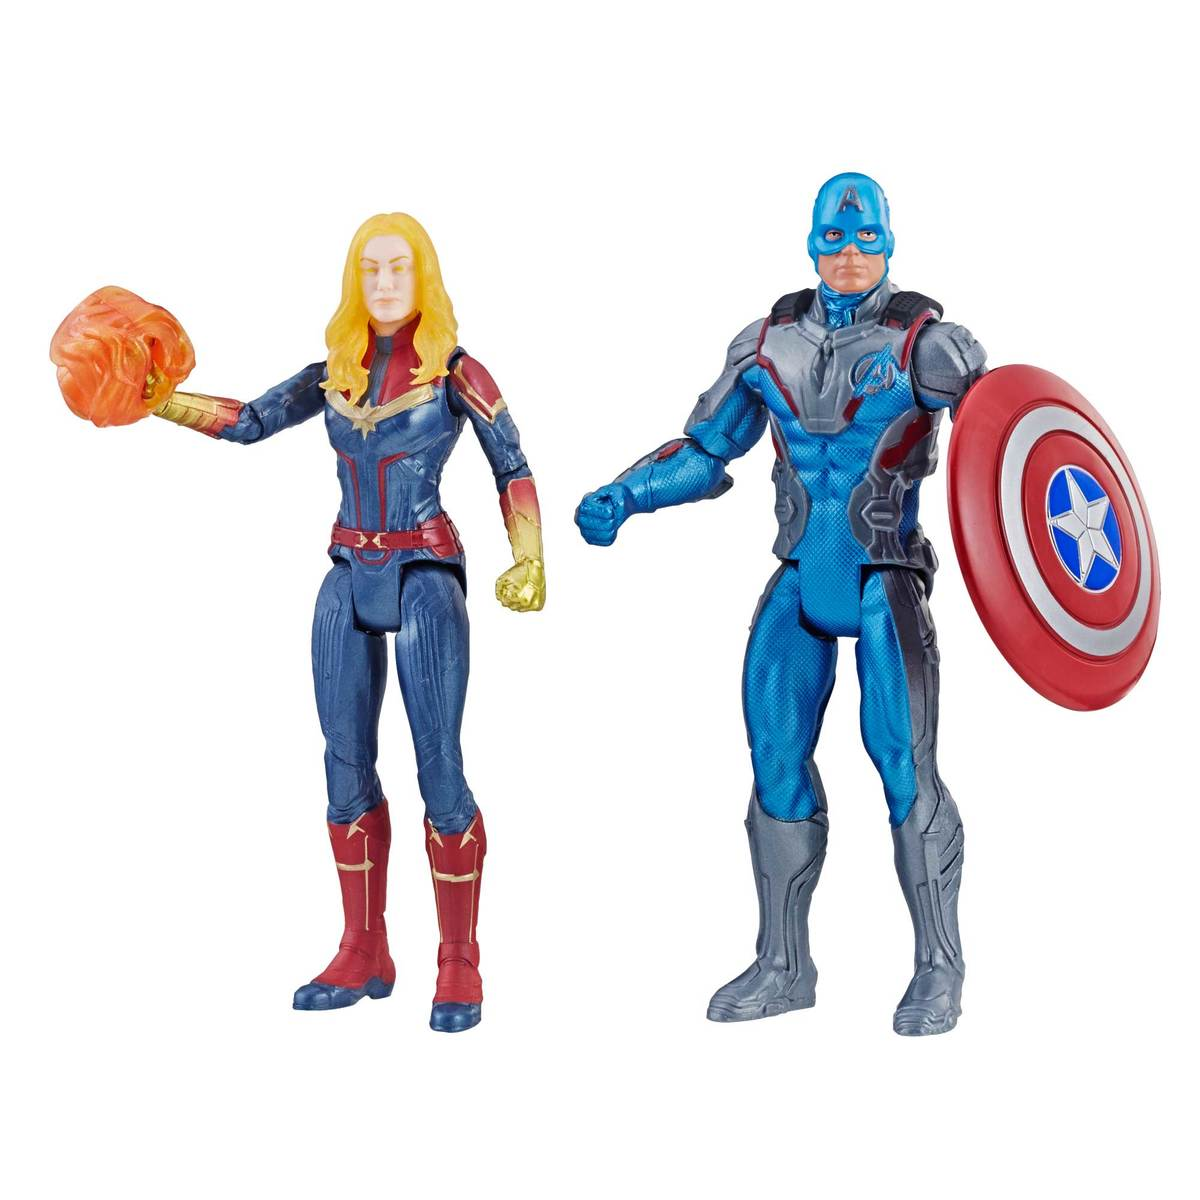 Marvel Avengers Action Figures Captain Marvel And Captain America The Entertainer